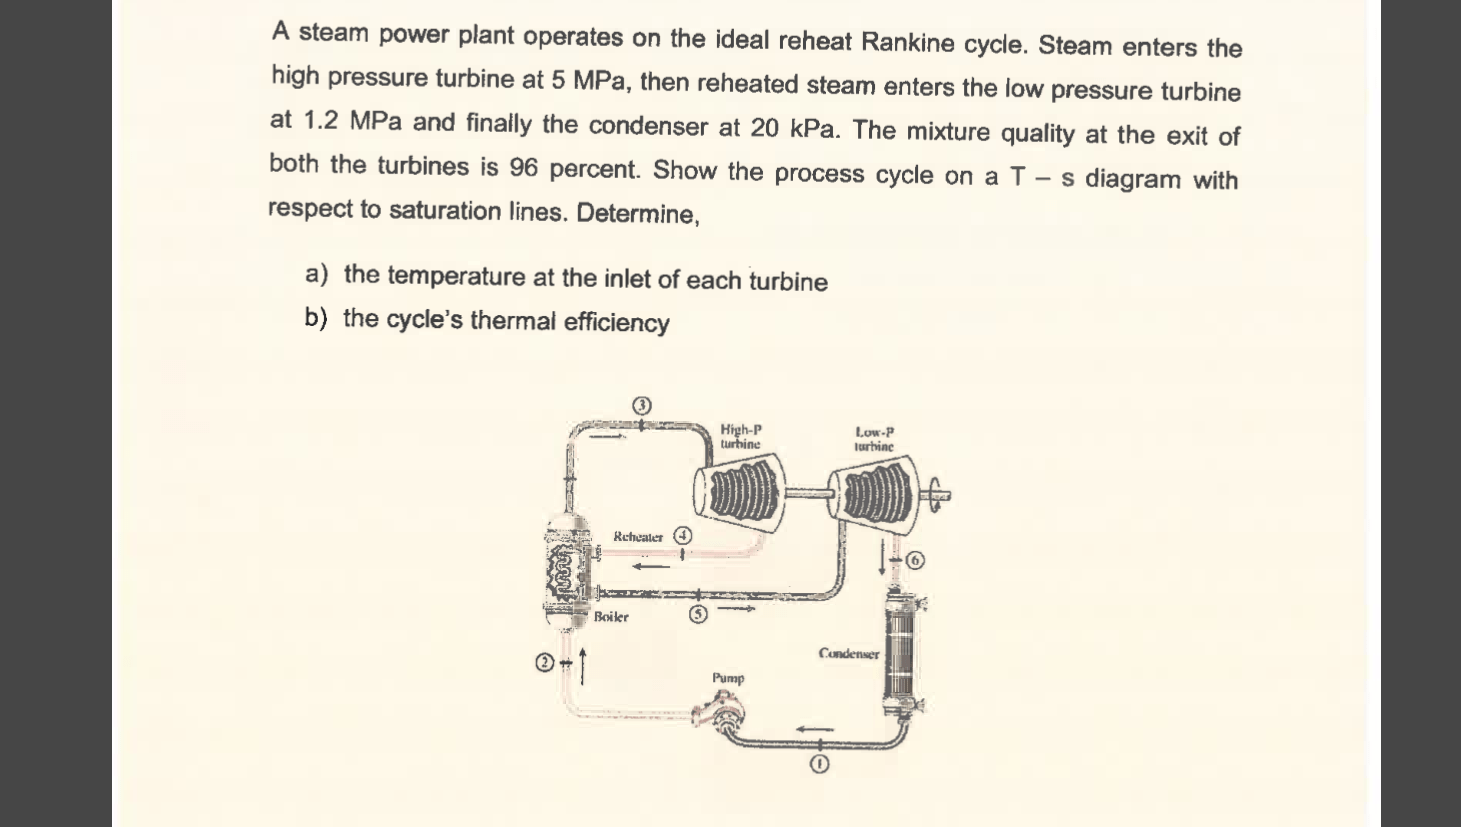 hight resolution of a steam power plant operates on the ideal reheat r